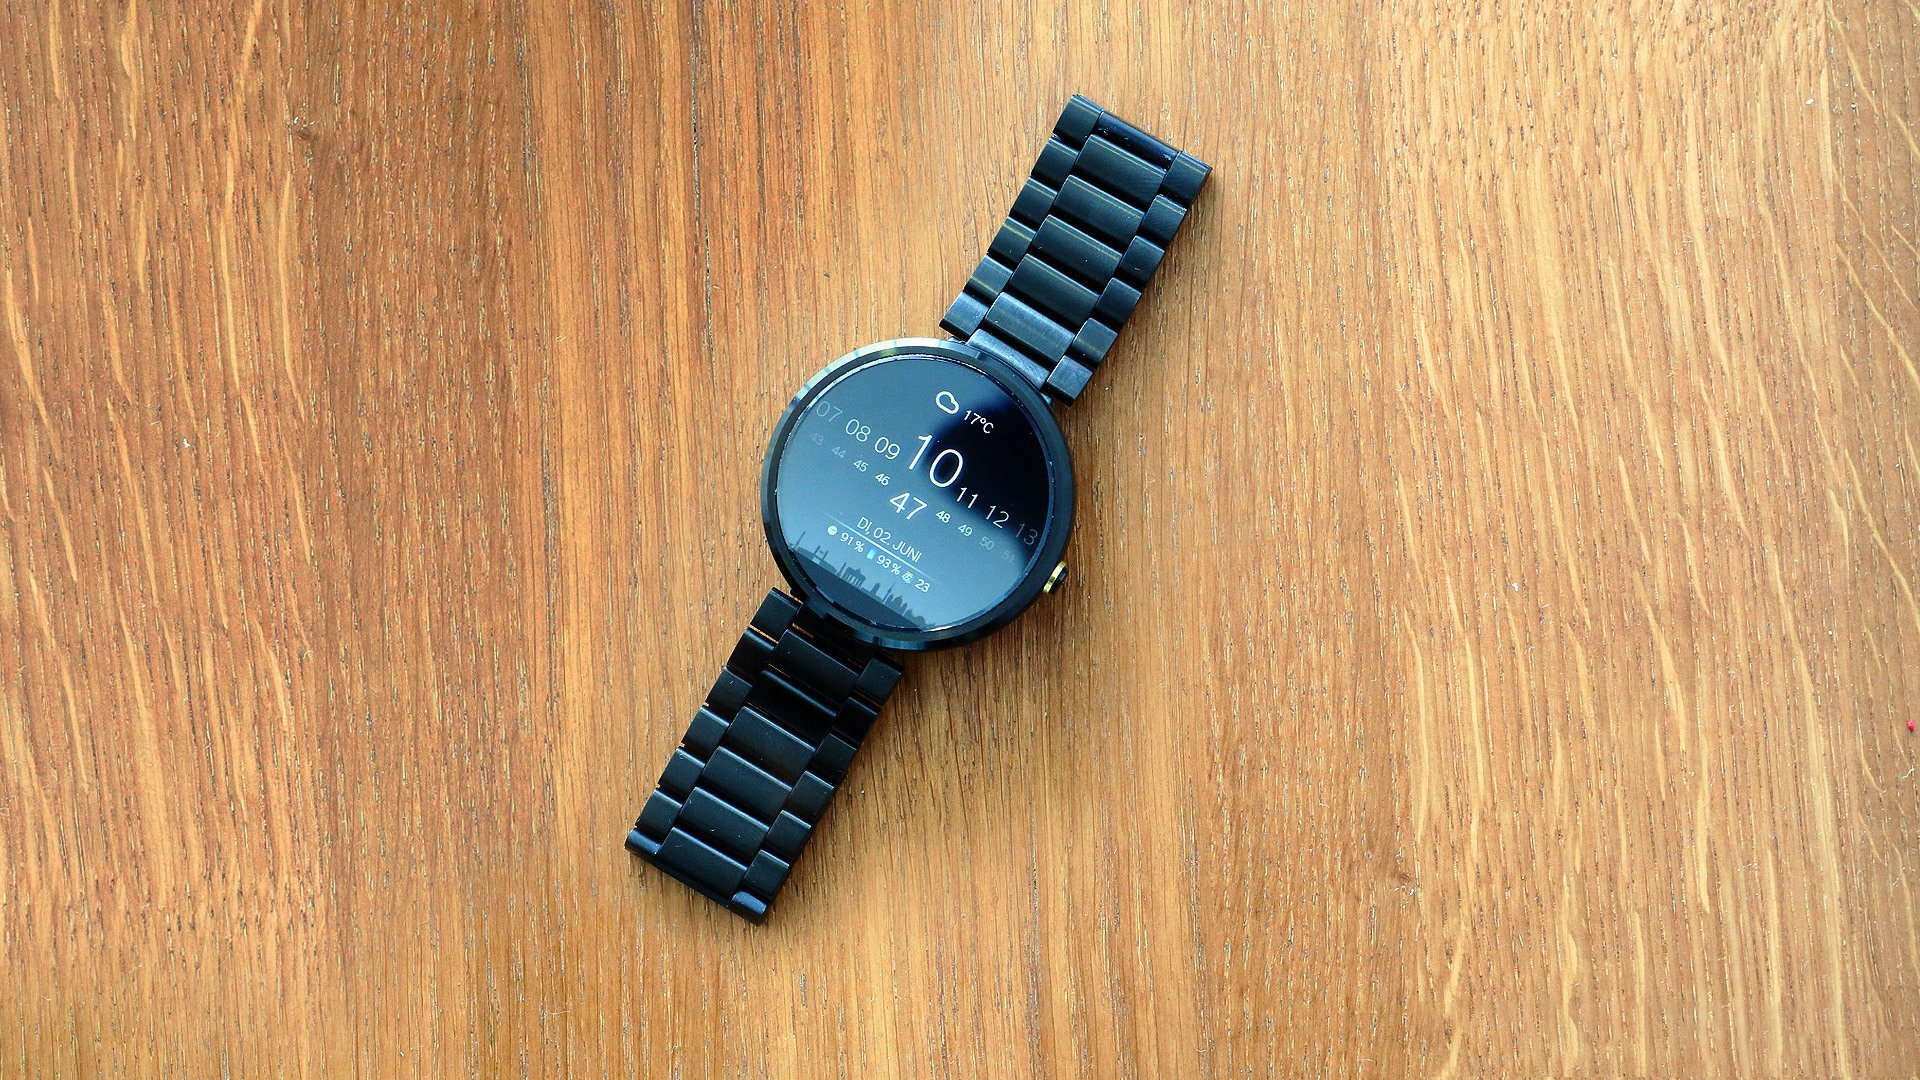 #TBT – Why I'll never forget the Motorola Moto 360